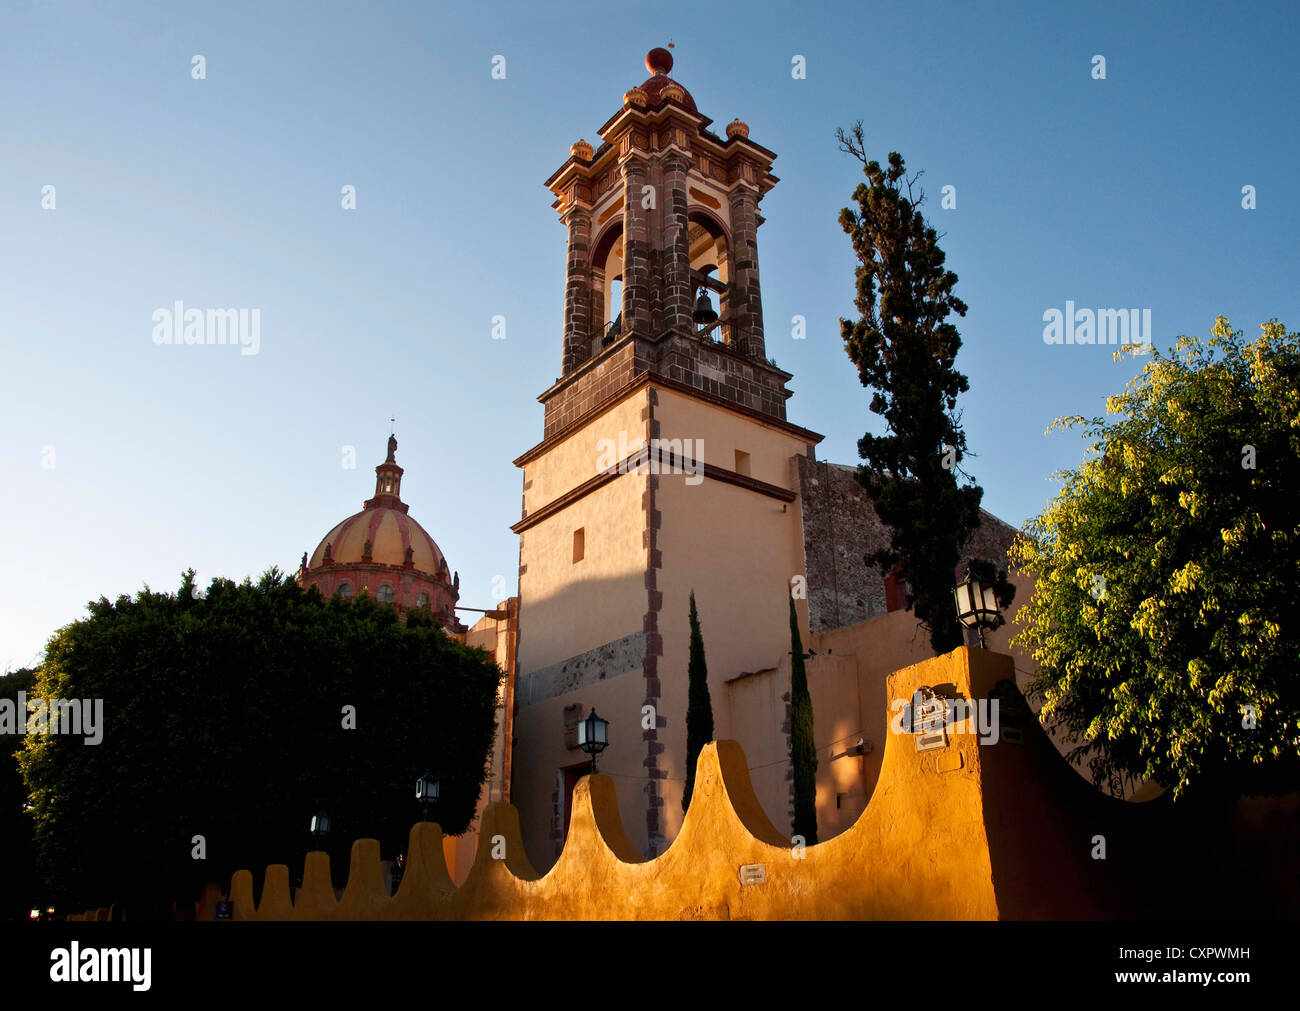 San Miguel de Allende's Templo de la Concepcion (Immaculate Conception Church) in late afternoon - Stock Image